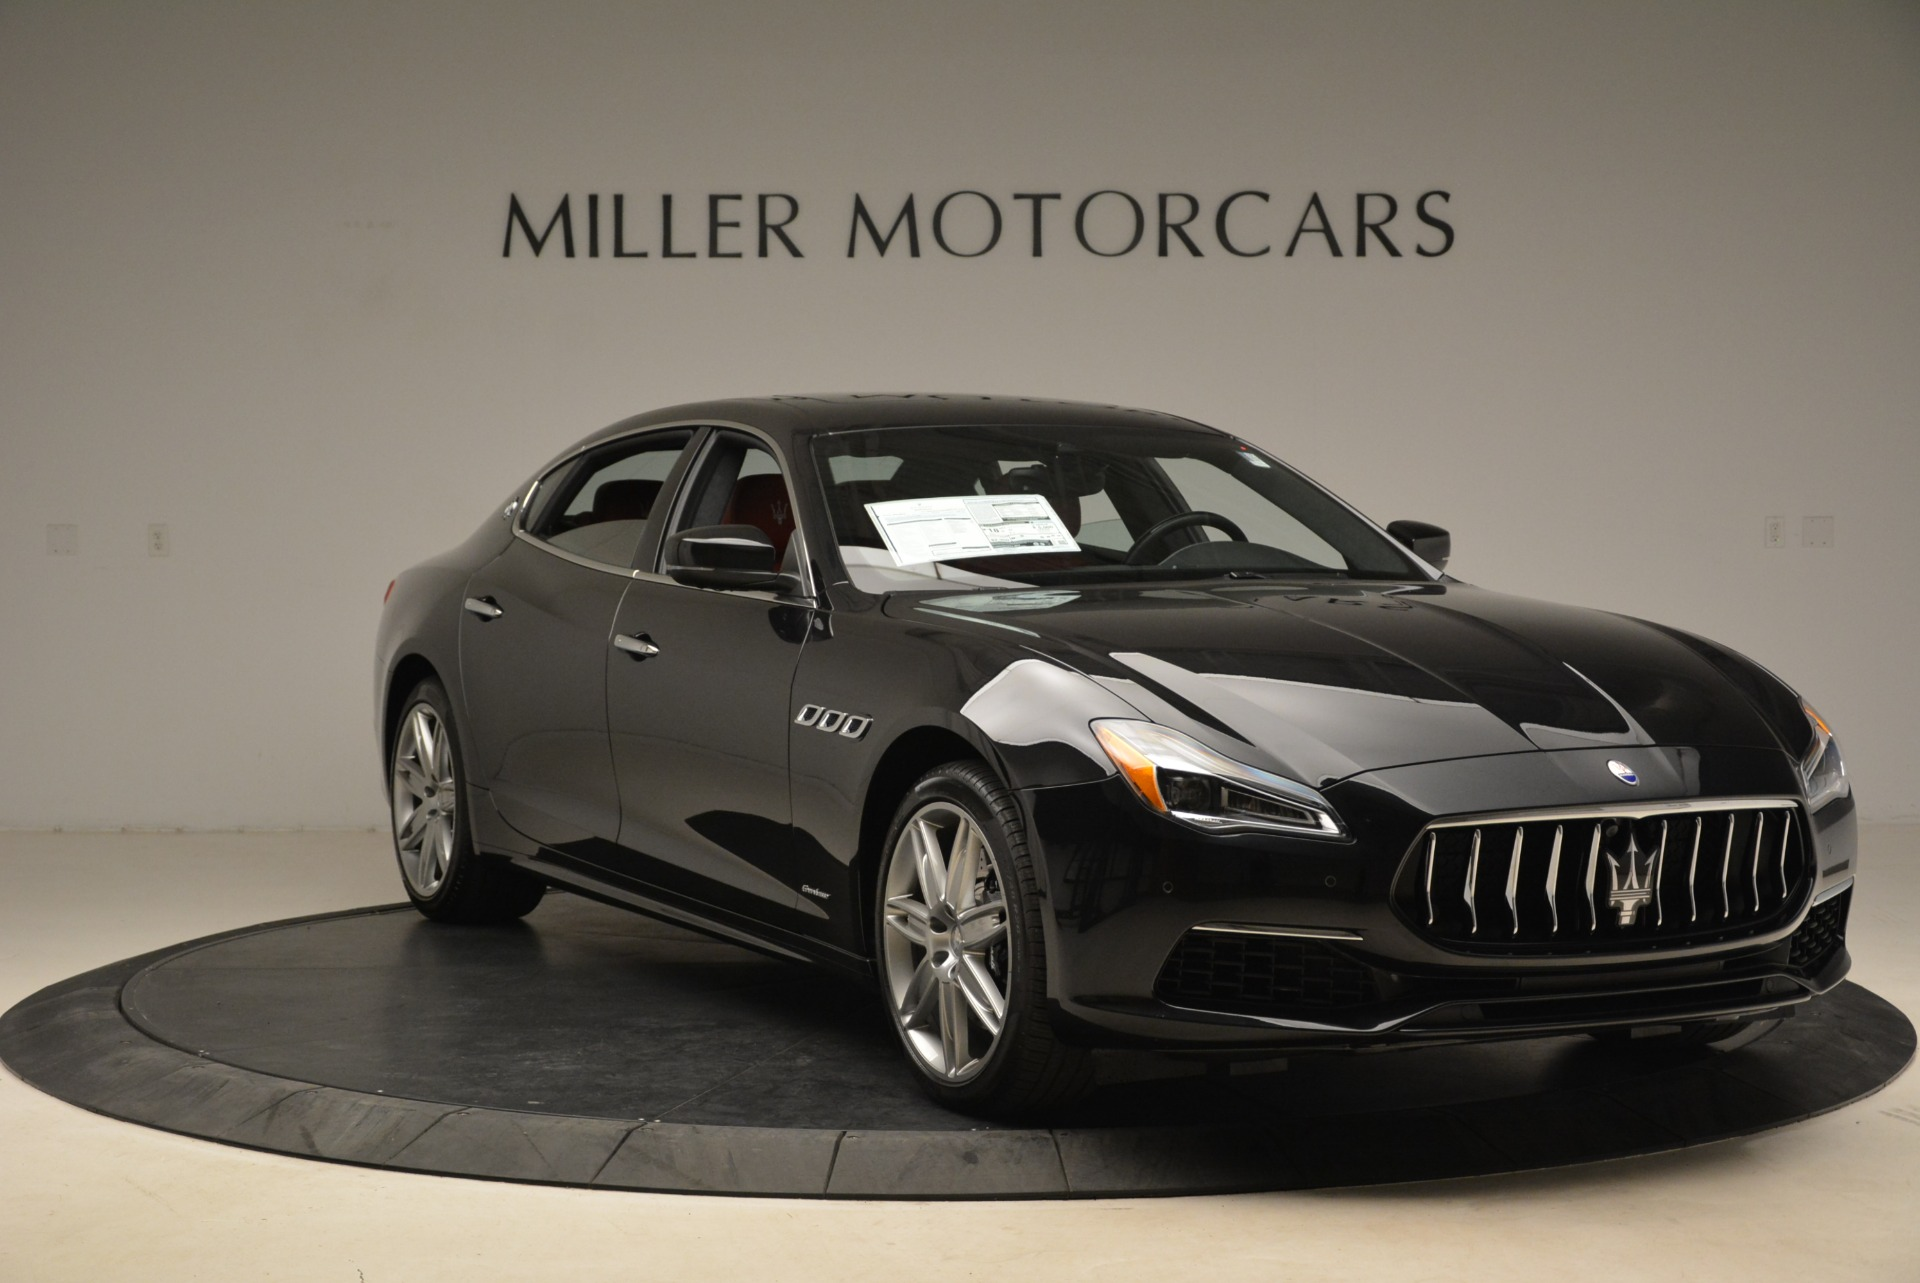 New 2018 Maserati Quattroporte S Q4 GranLusso For Sale In Greenwich, CT. Alfa Romeo of Greenwich, M2095 2186_p12